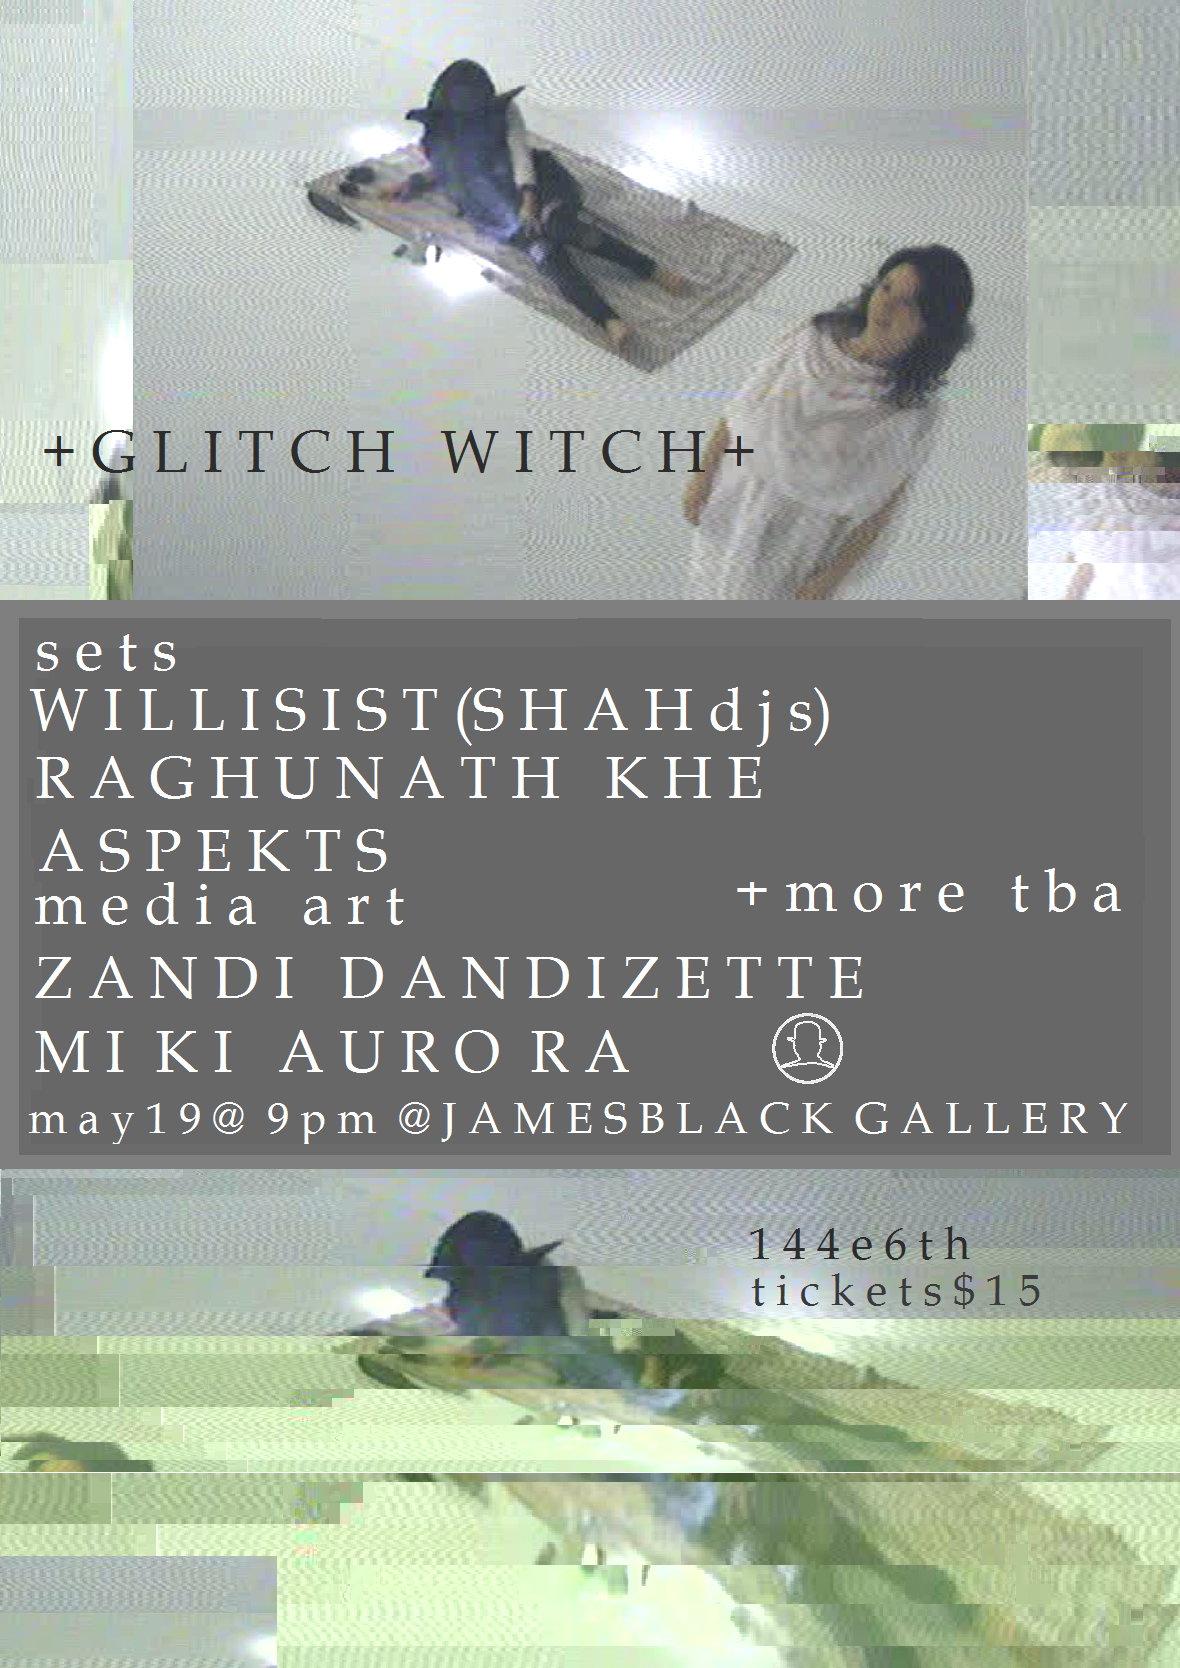 Glitch_witchflyerfinal